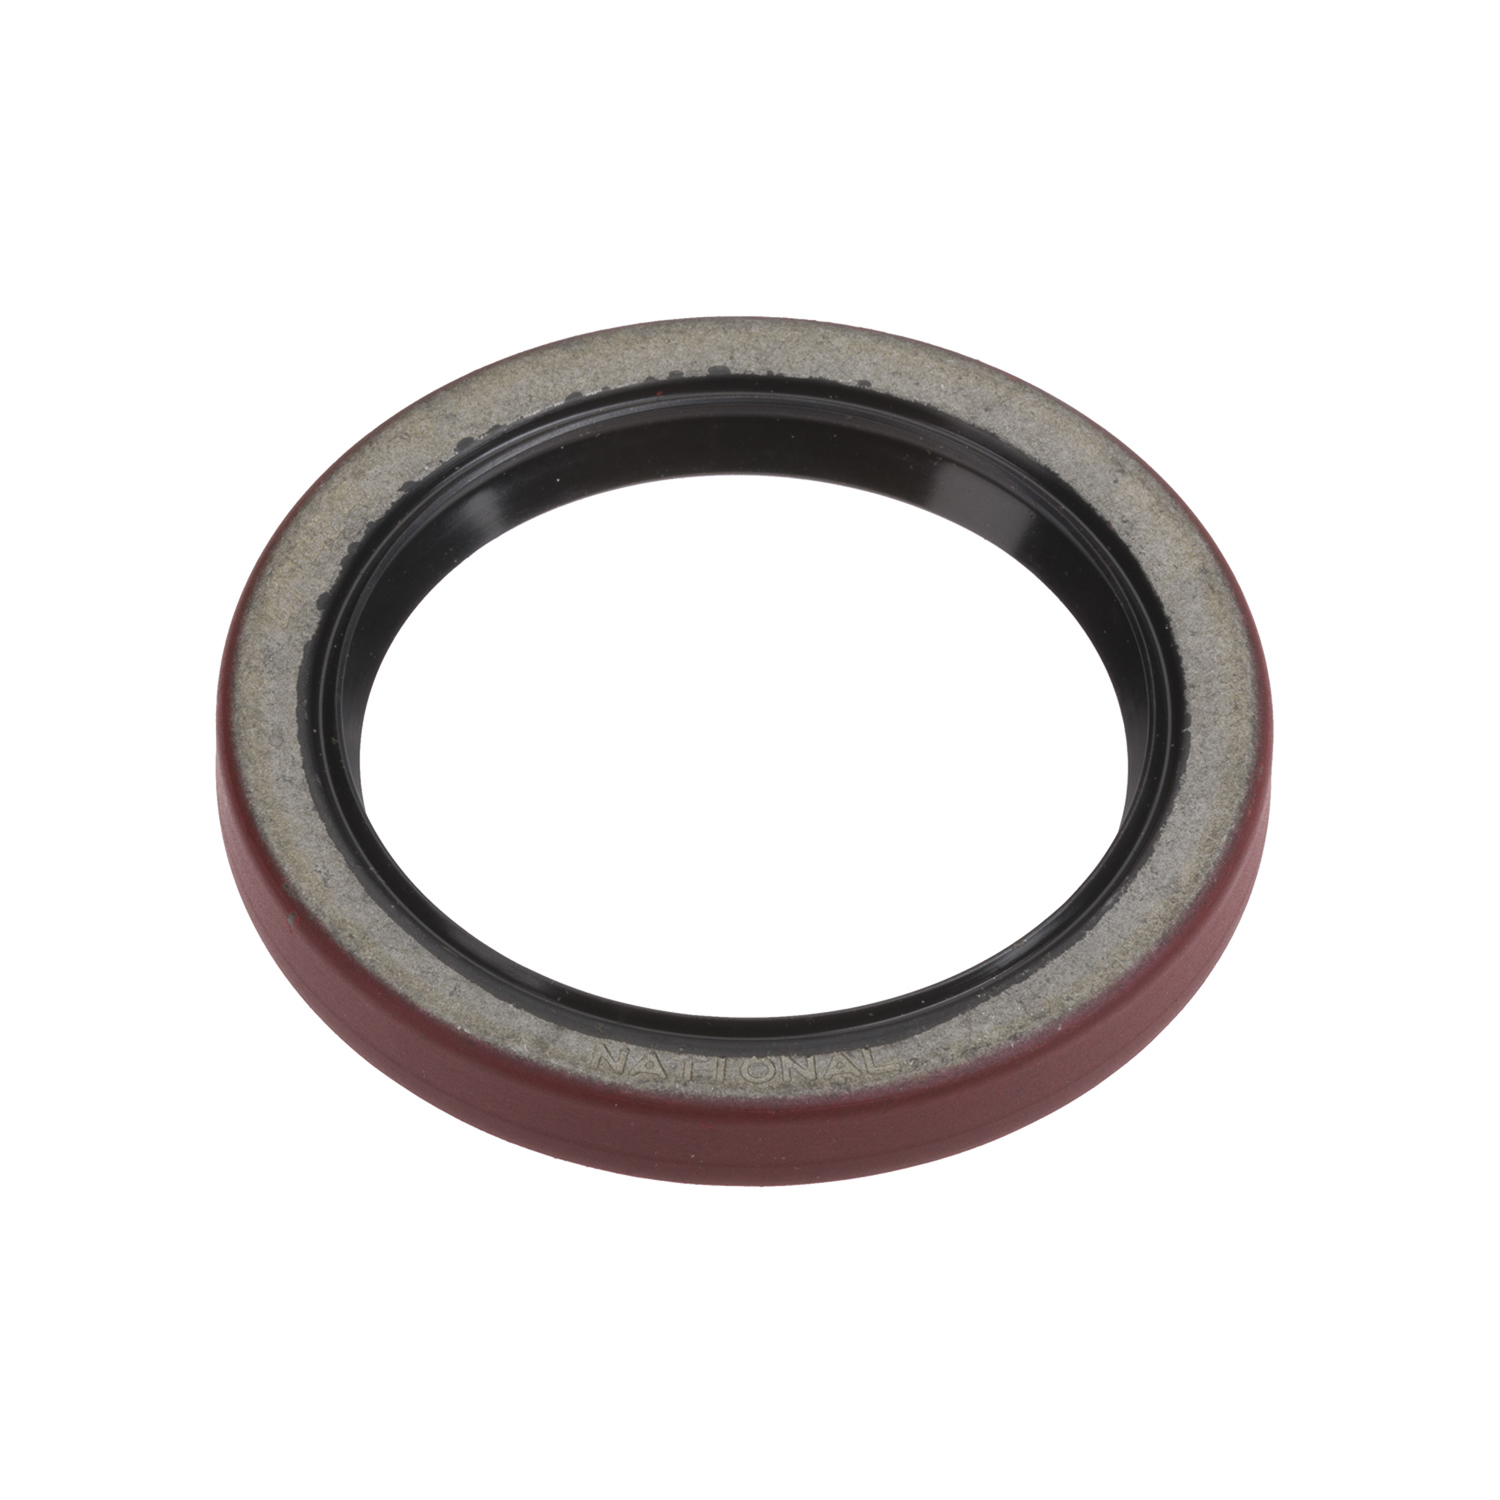 Transfer Case Power Take Off (PTO) Shaft Seal